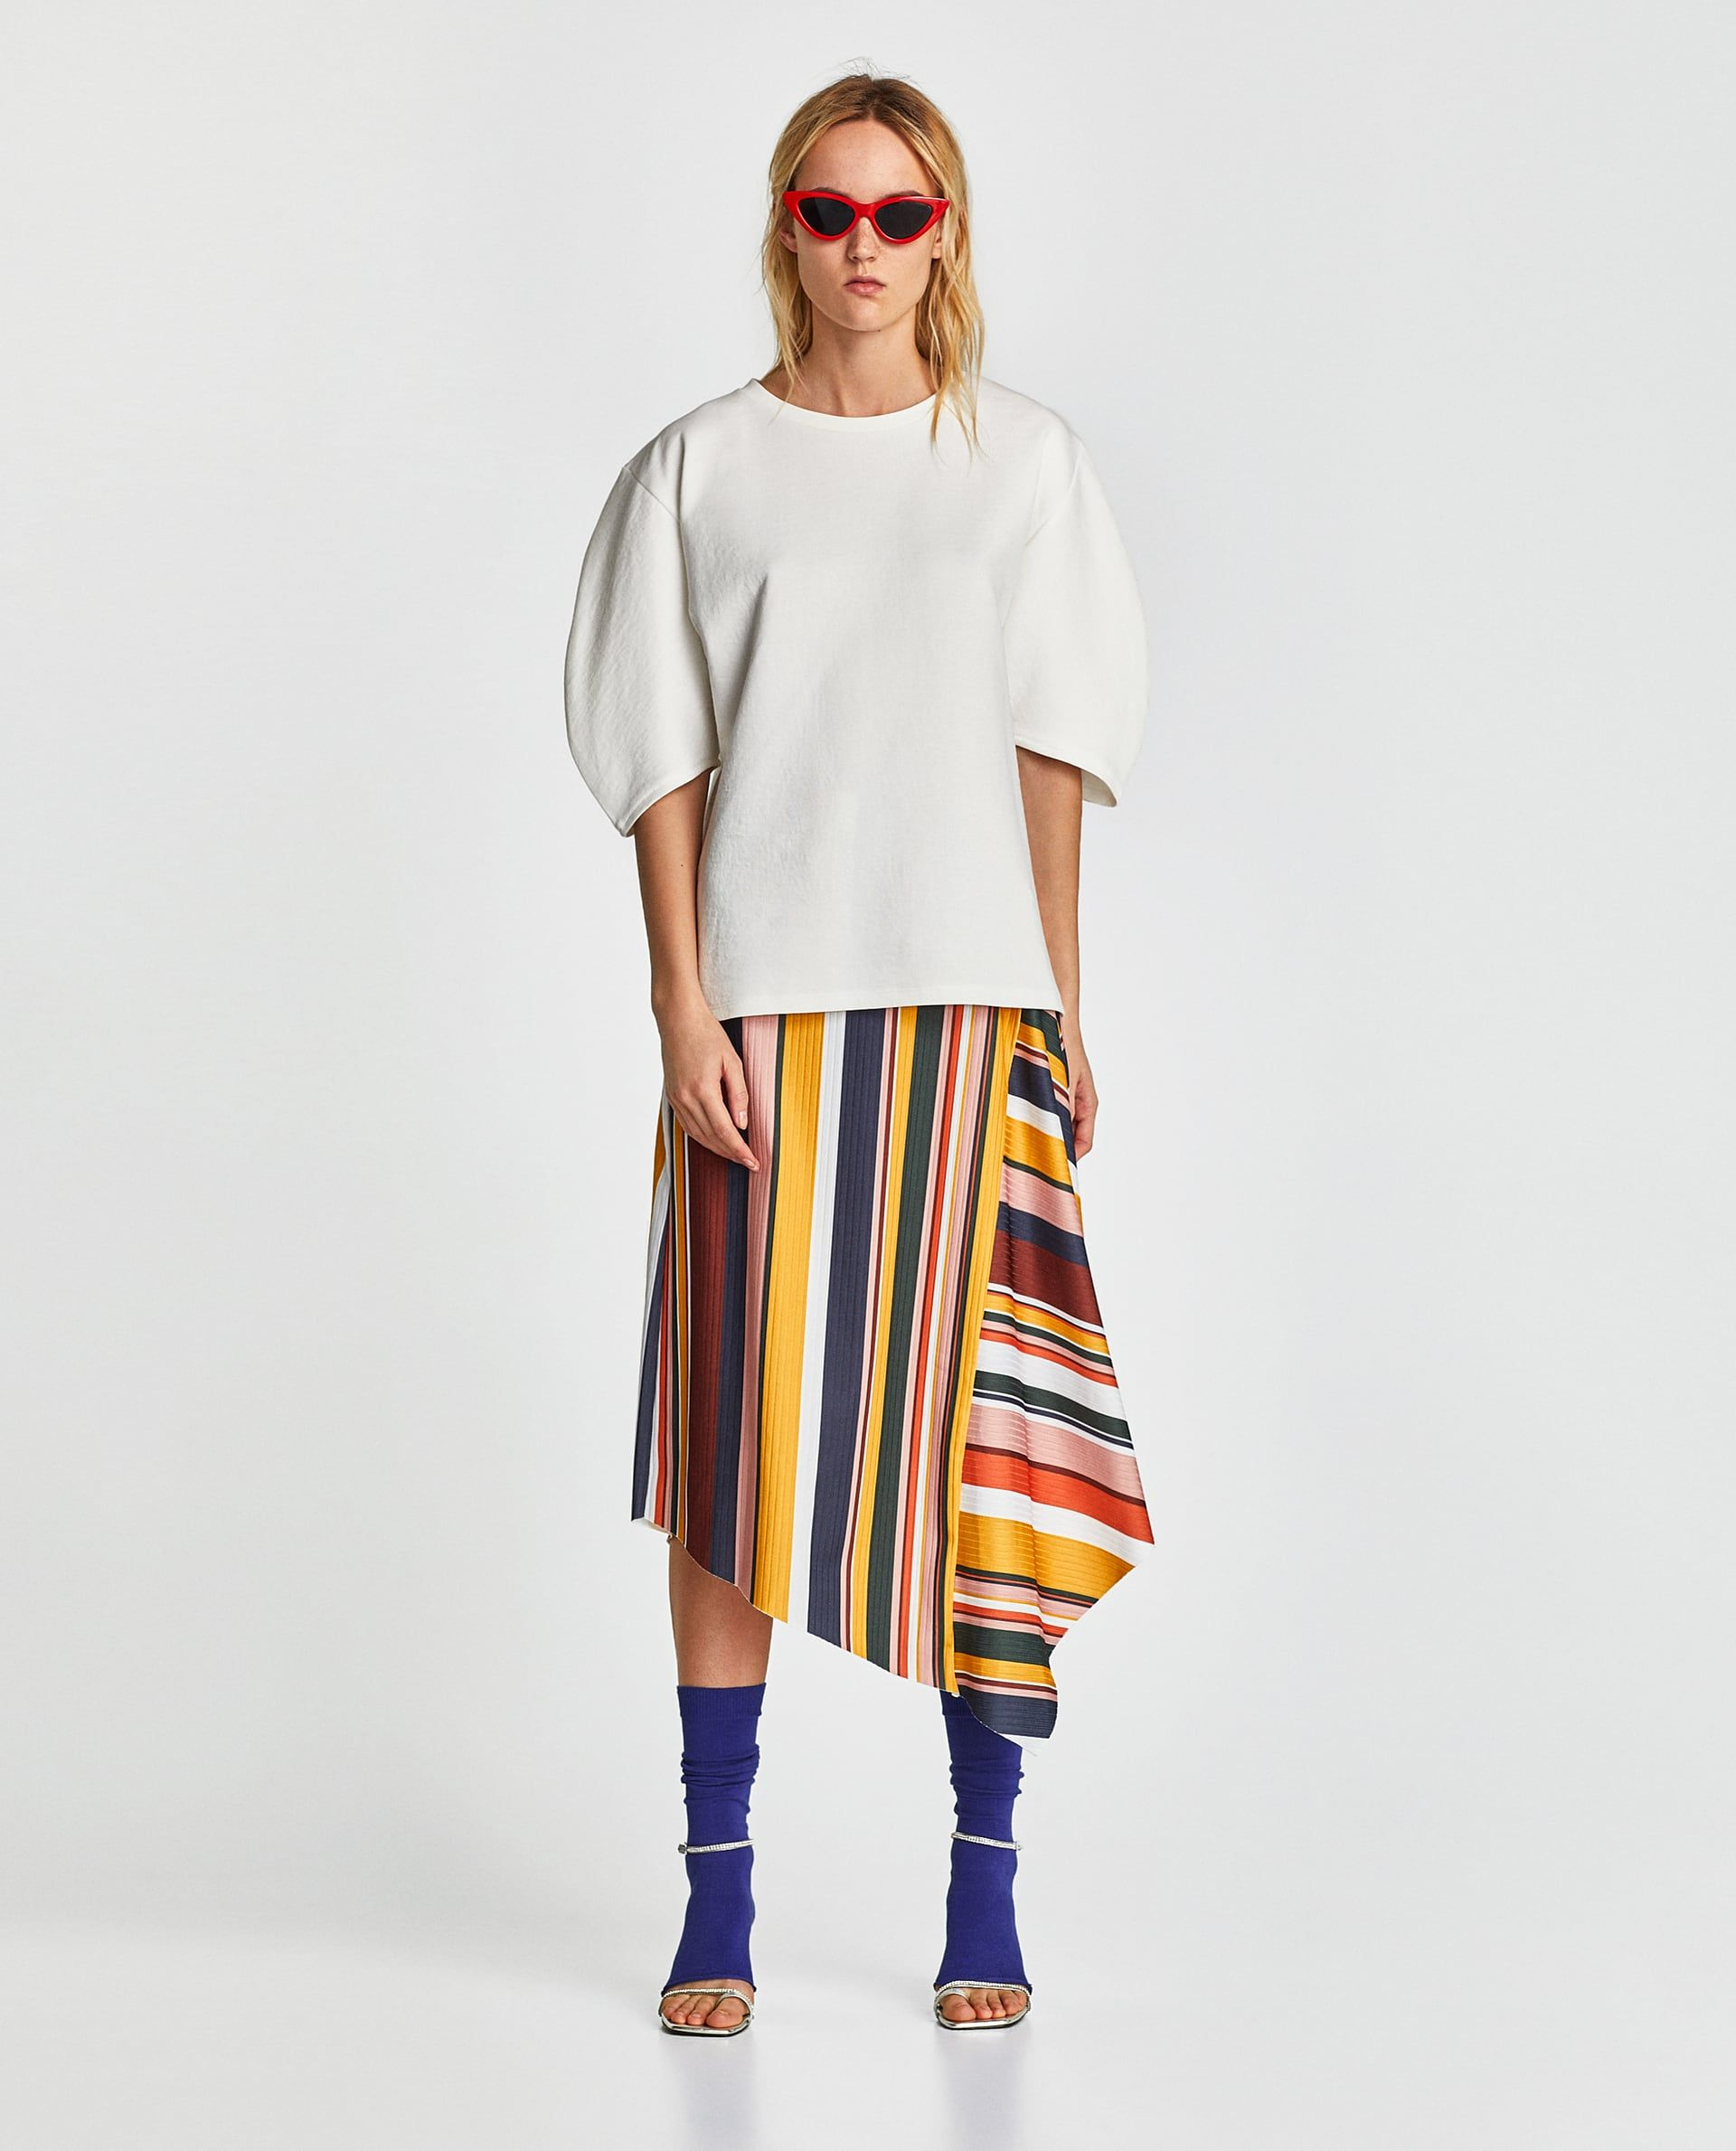 4e480ad6 ZARA - WOMAN - SKIRT WITH MULTICOLORED STRIPES. Image 1 of SKIRT WITH  MULTICOLORED STRIPES from Zara Summer Fashion Trends, Spring Summer Fashion